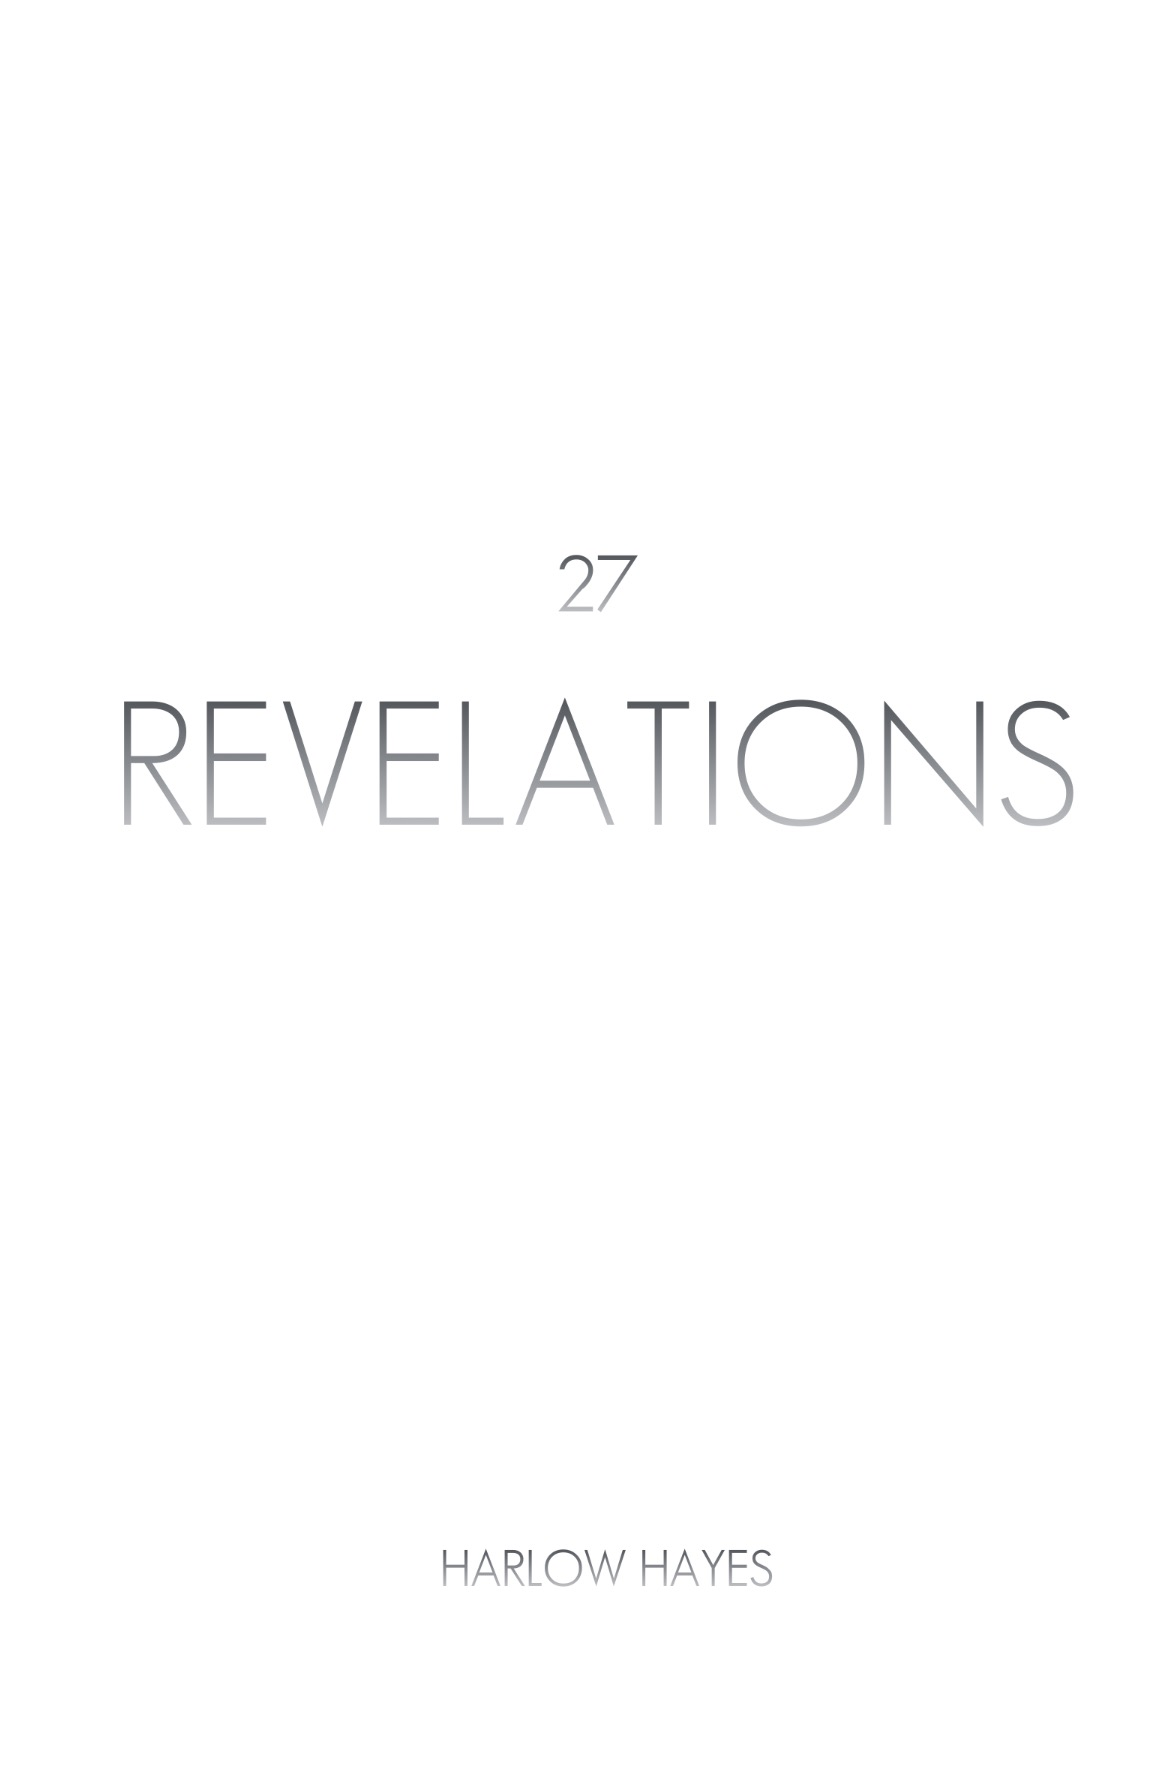 27 Revelations by Harlow Hayes